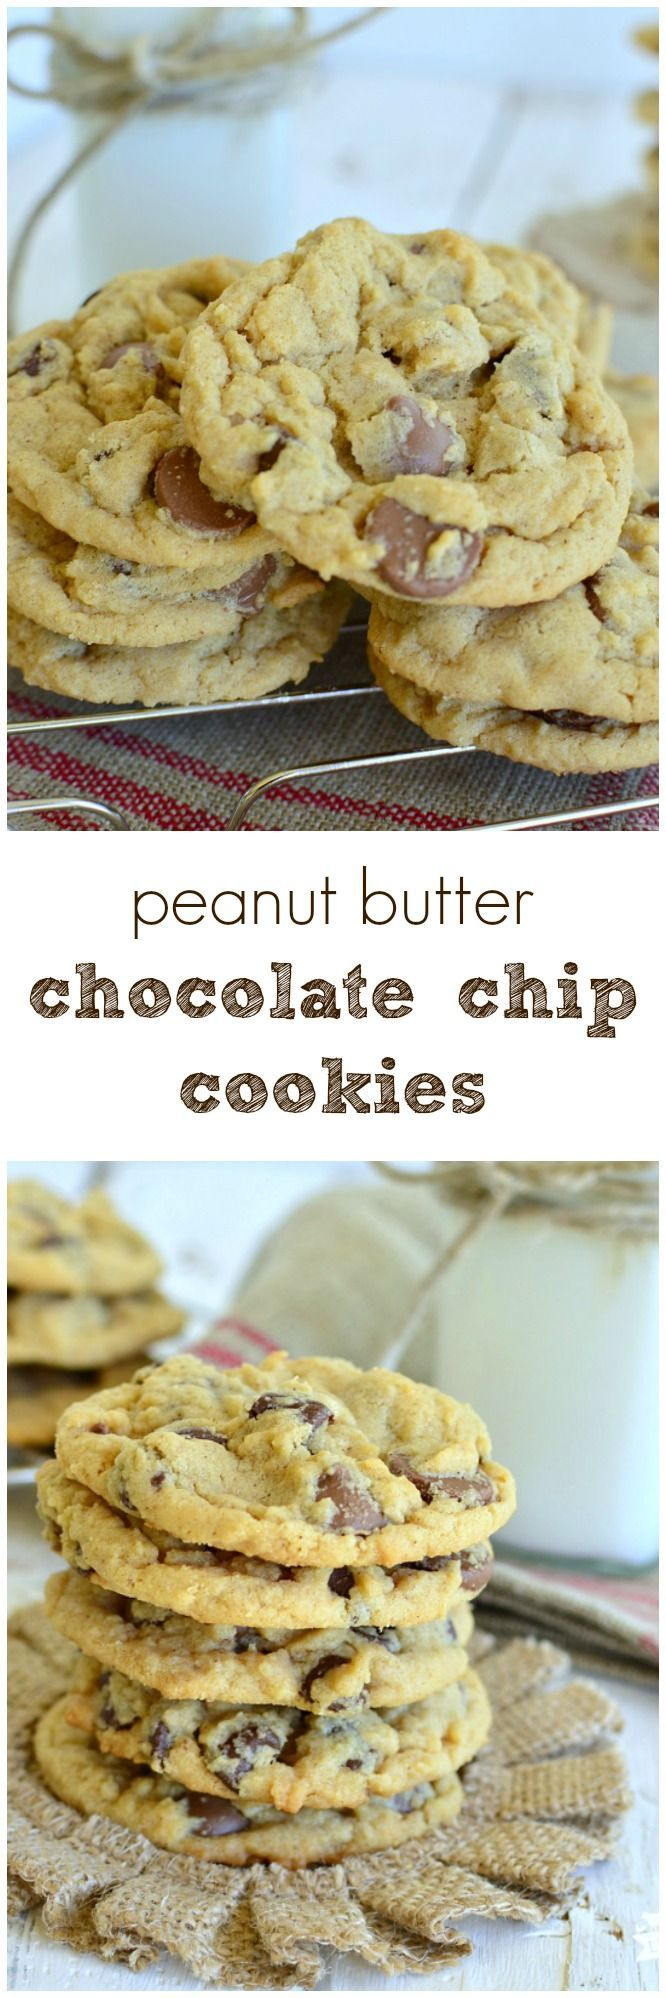 The best Peanut Butter Chocolate Chip Cookies!  A little crsipy on the edges and chewy in the center! #easyrecipe www.littledairyontheprairie.com